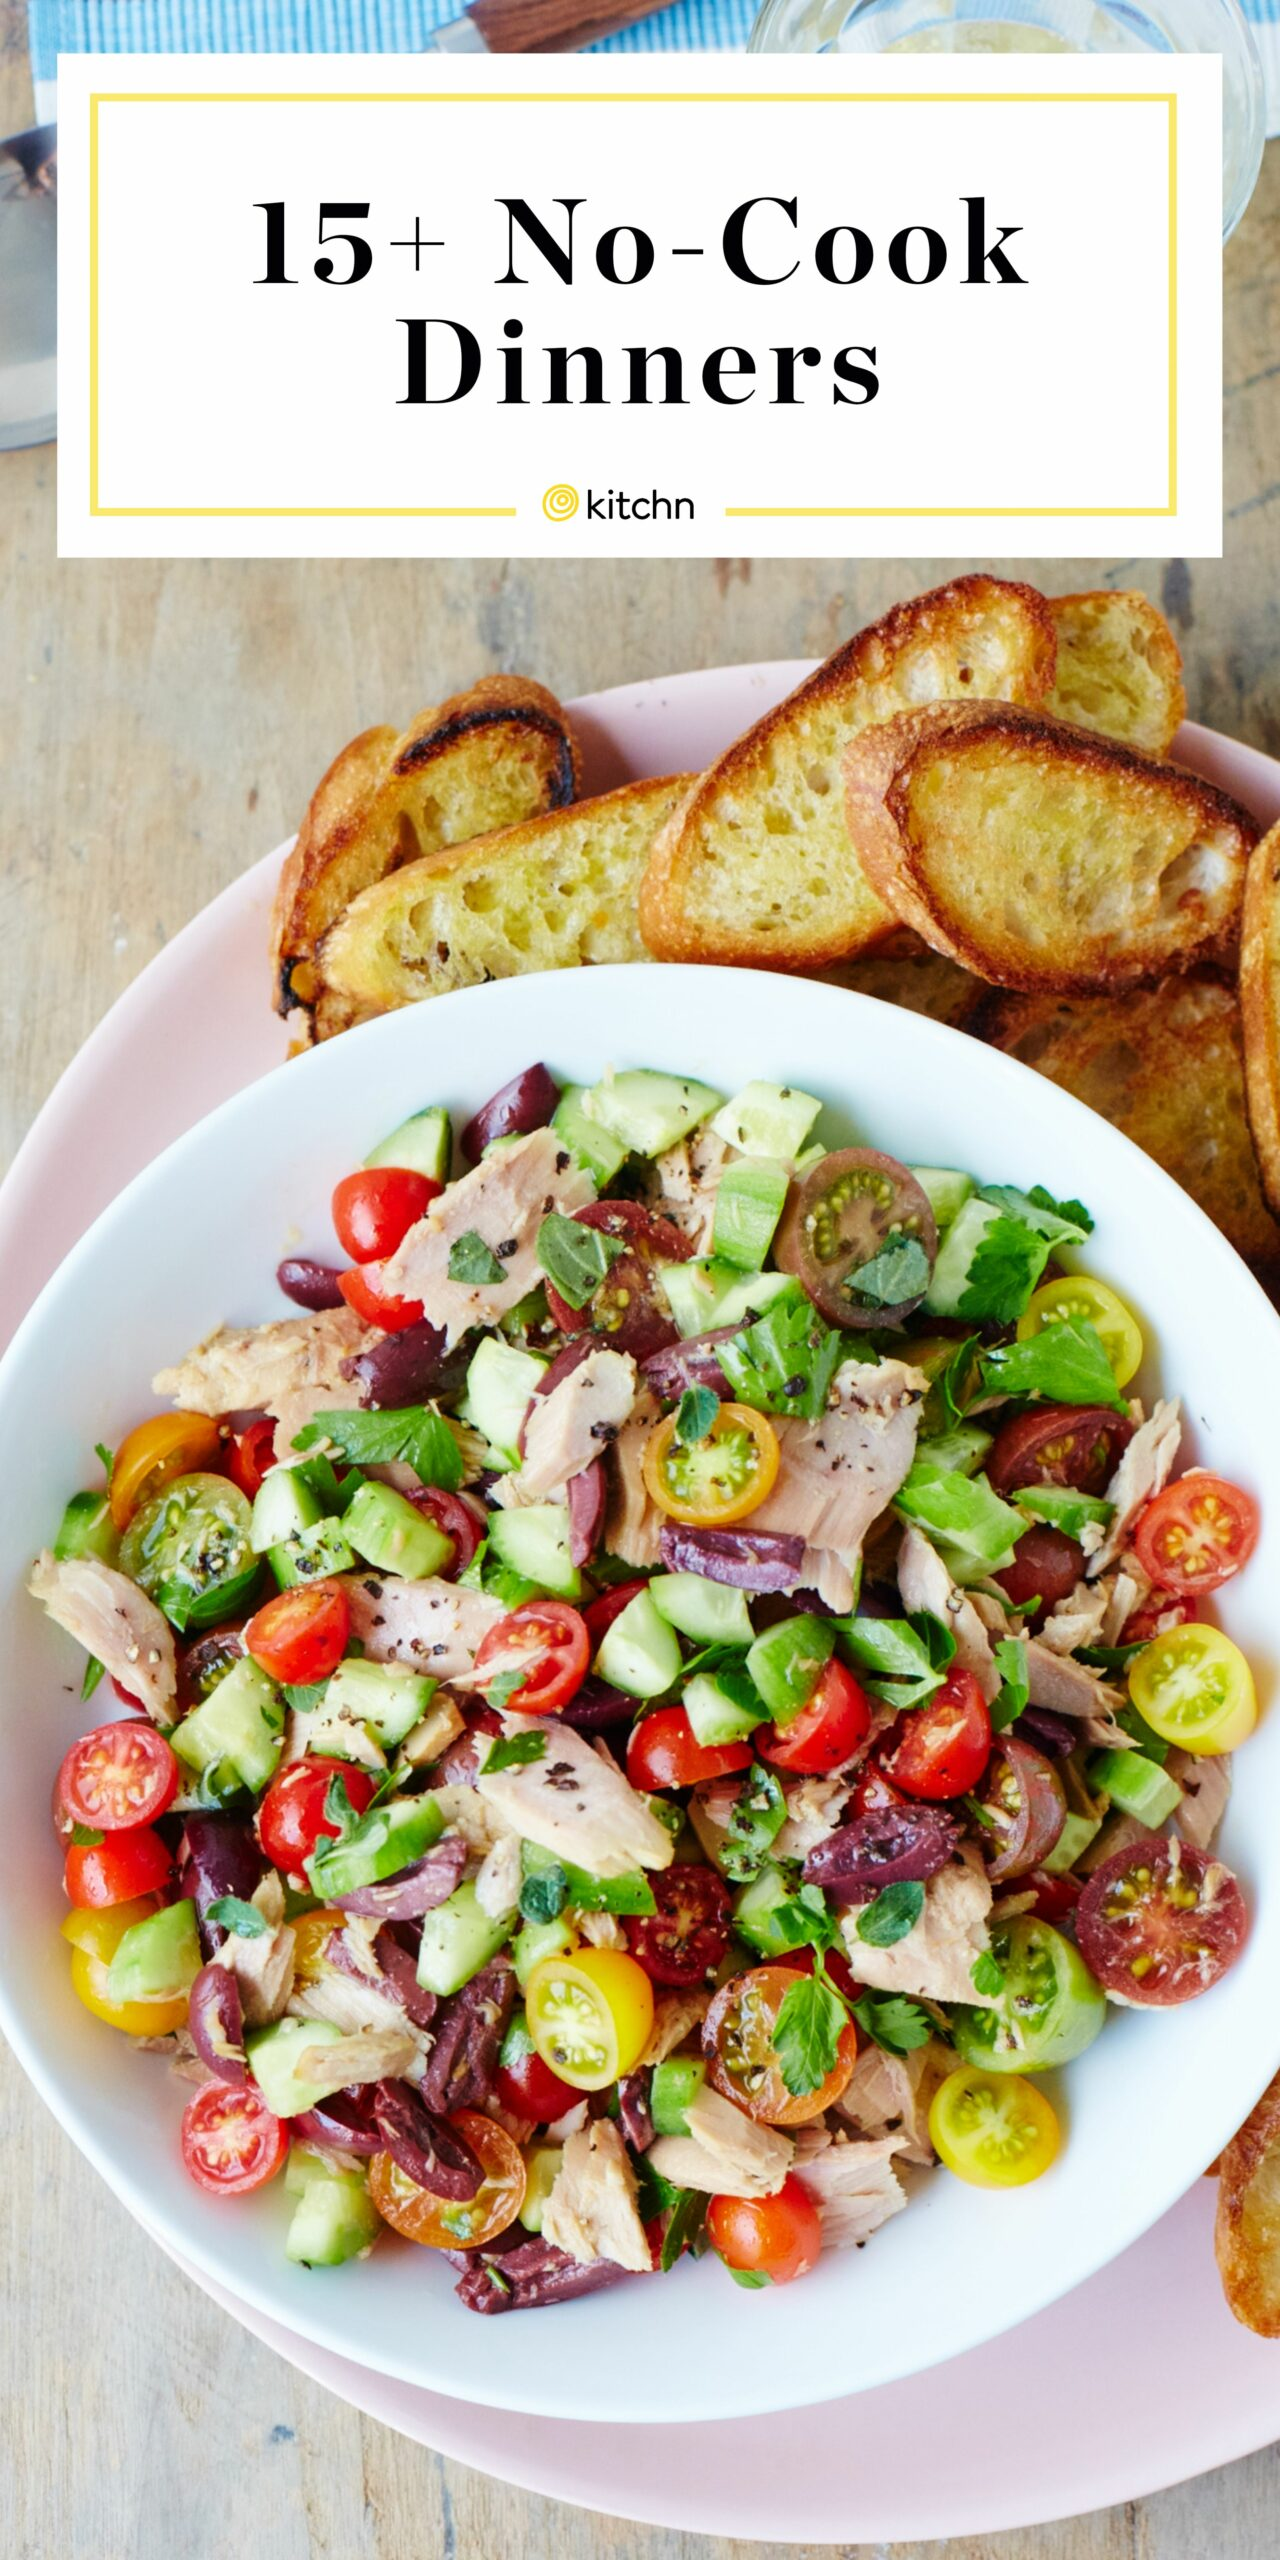 8 No-Cook Dinners for Summer | Kitchn - Summer Recipes Kitchn